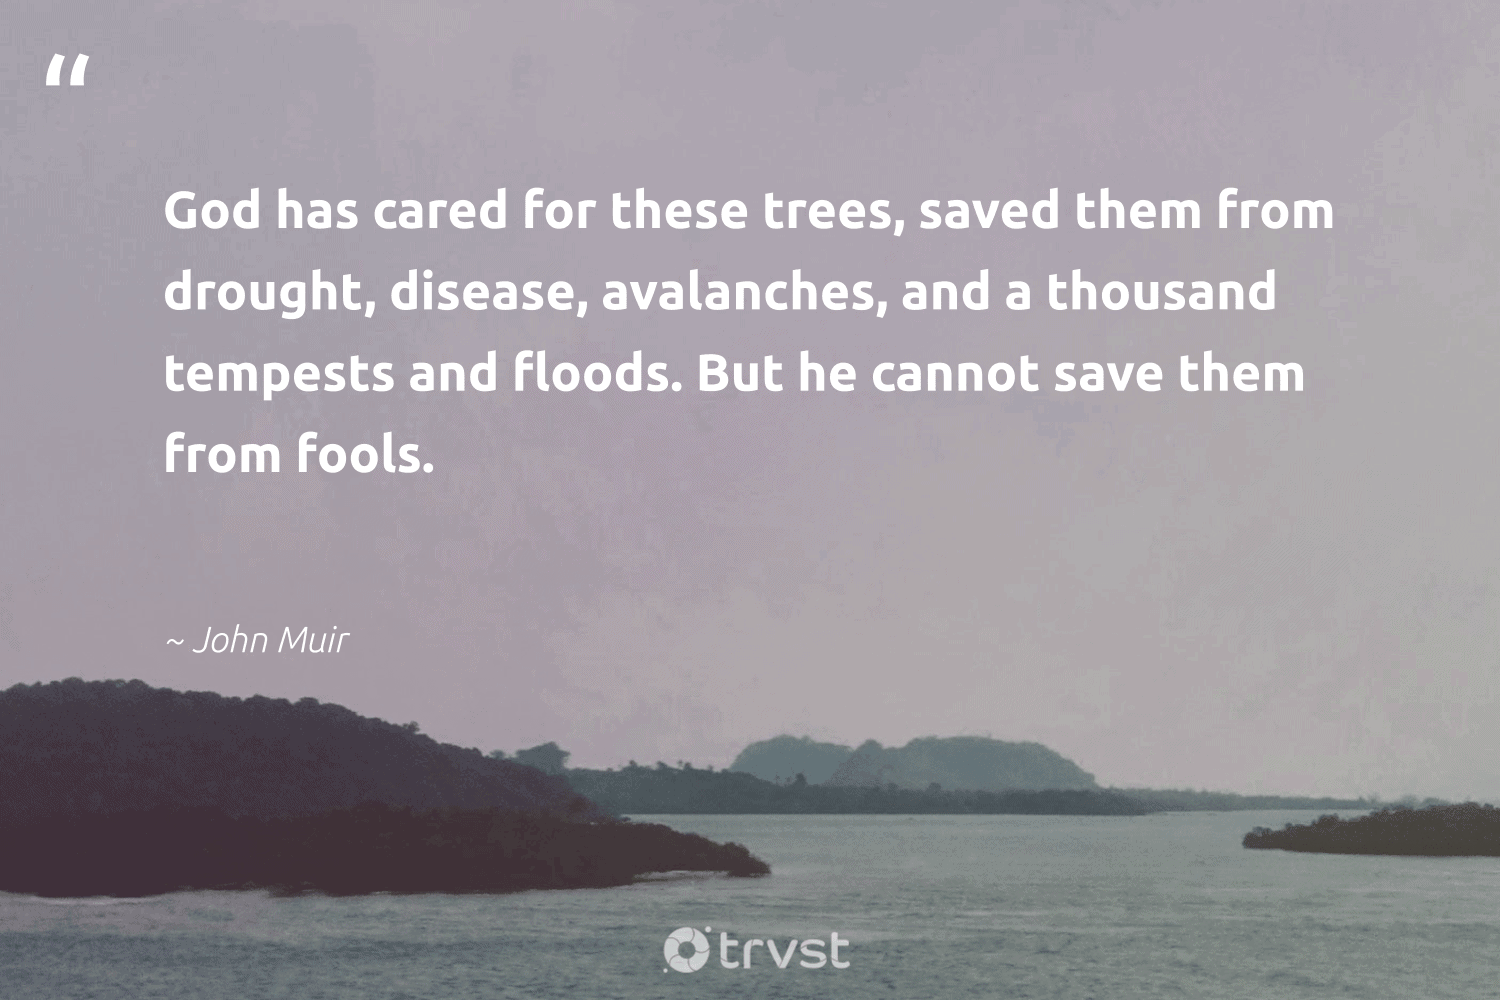 """""""God has cared for these trees, saved them from drought, disease, avalanches, and a thousand tempests and floods. But he cannot save them from fools.""""  - John Muir #trvst #quotes #deforestation #trees #plantatree #sustainableliving #wildlifeplanet #gogreen #rainforest #getoutside #sustainability #beinspired"""